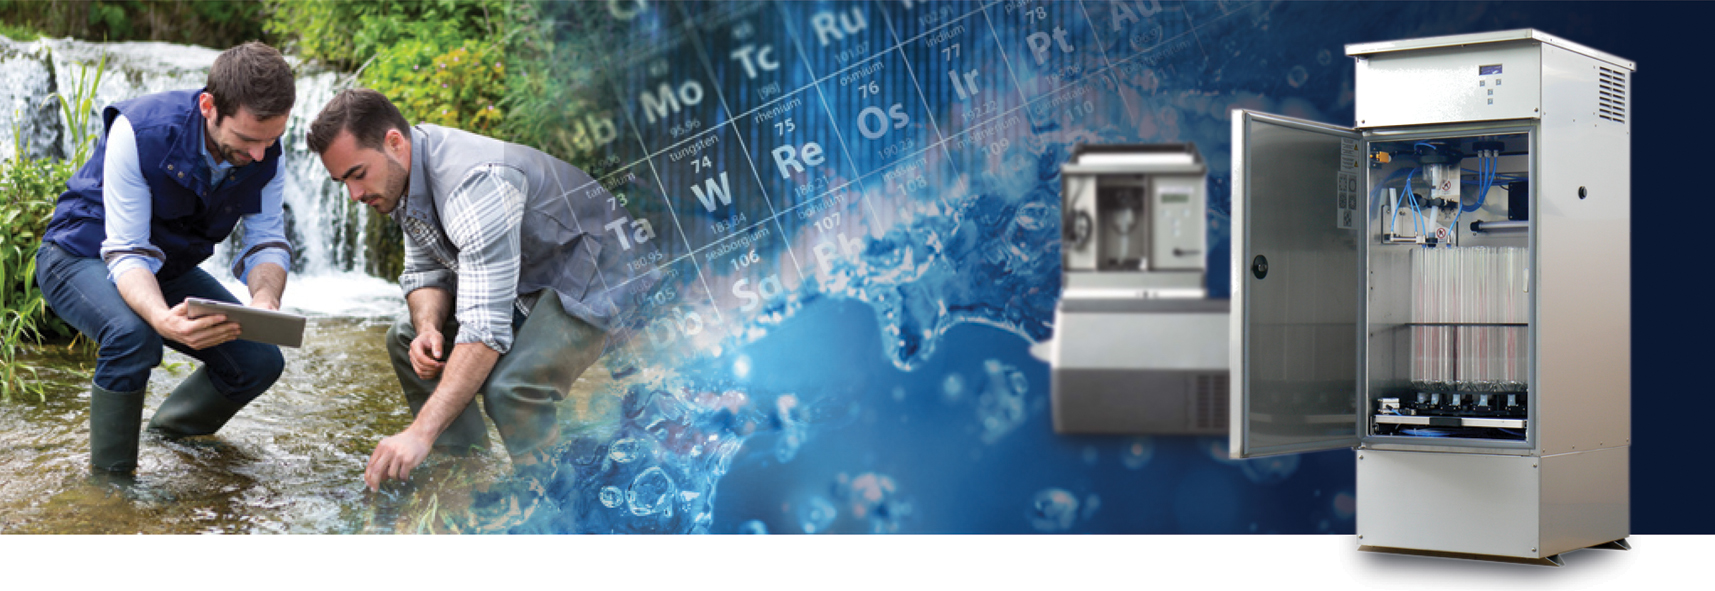 Water Samplers and Water Autosamplers - Analytical Solutions